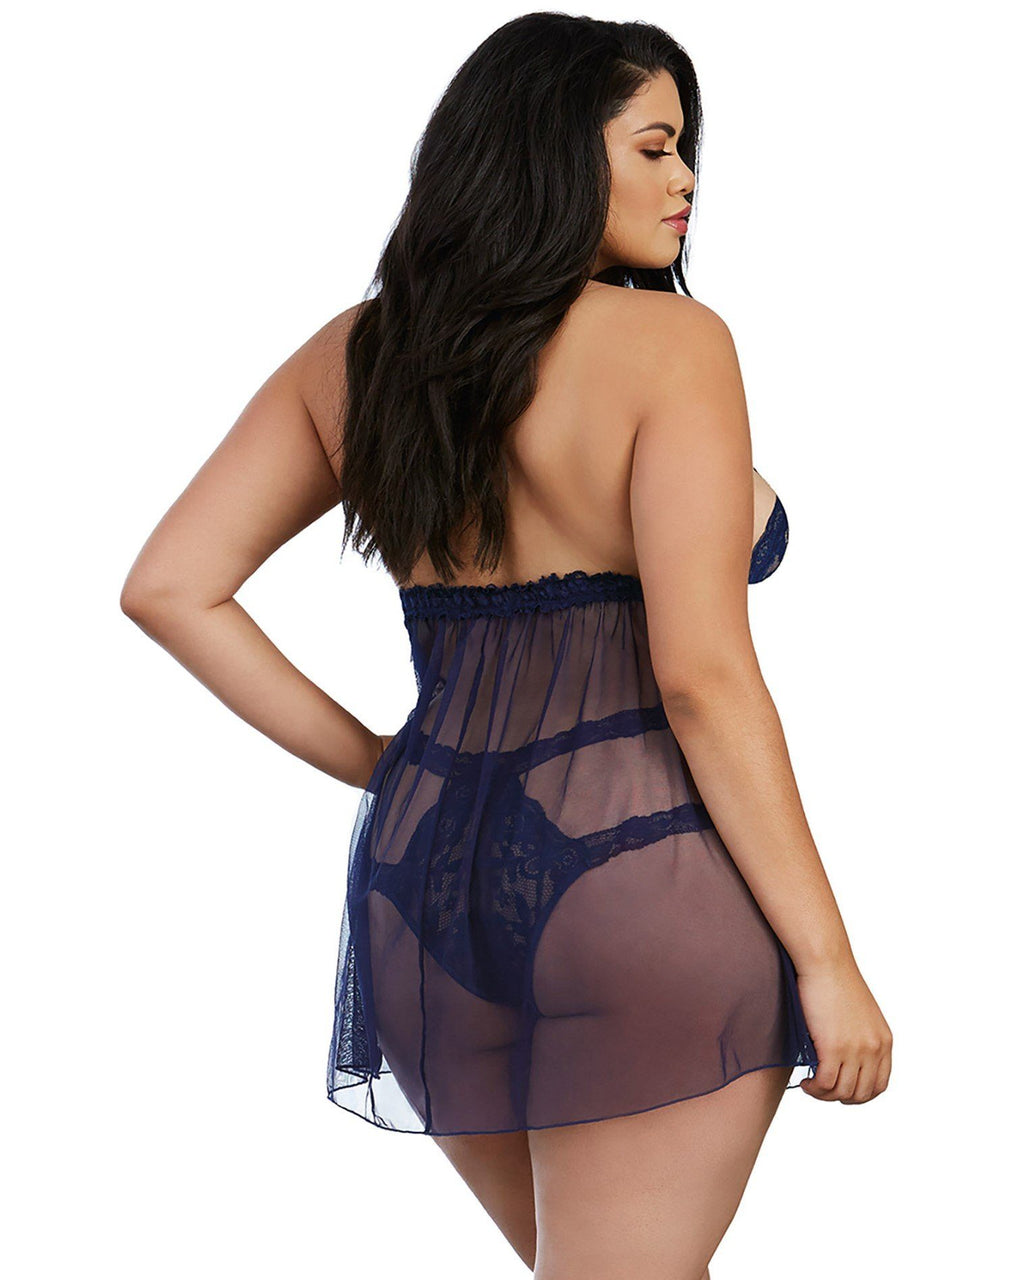 Plus Size Stretch Lace and Mesh Babydoll with Matching Panty Babydoll Dreamgirl International